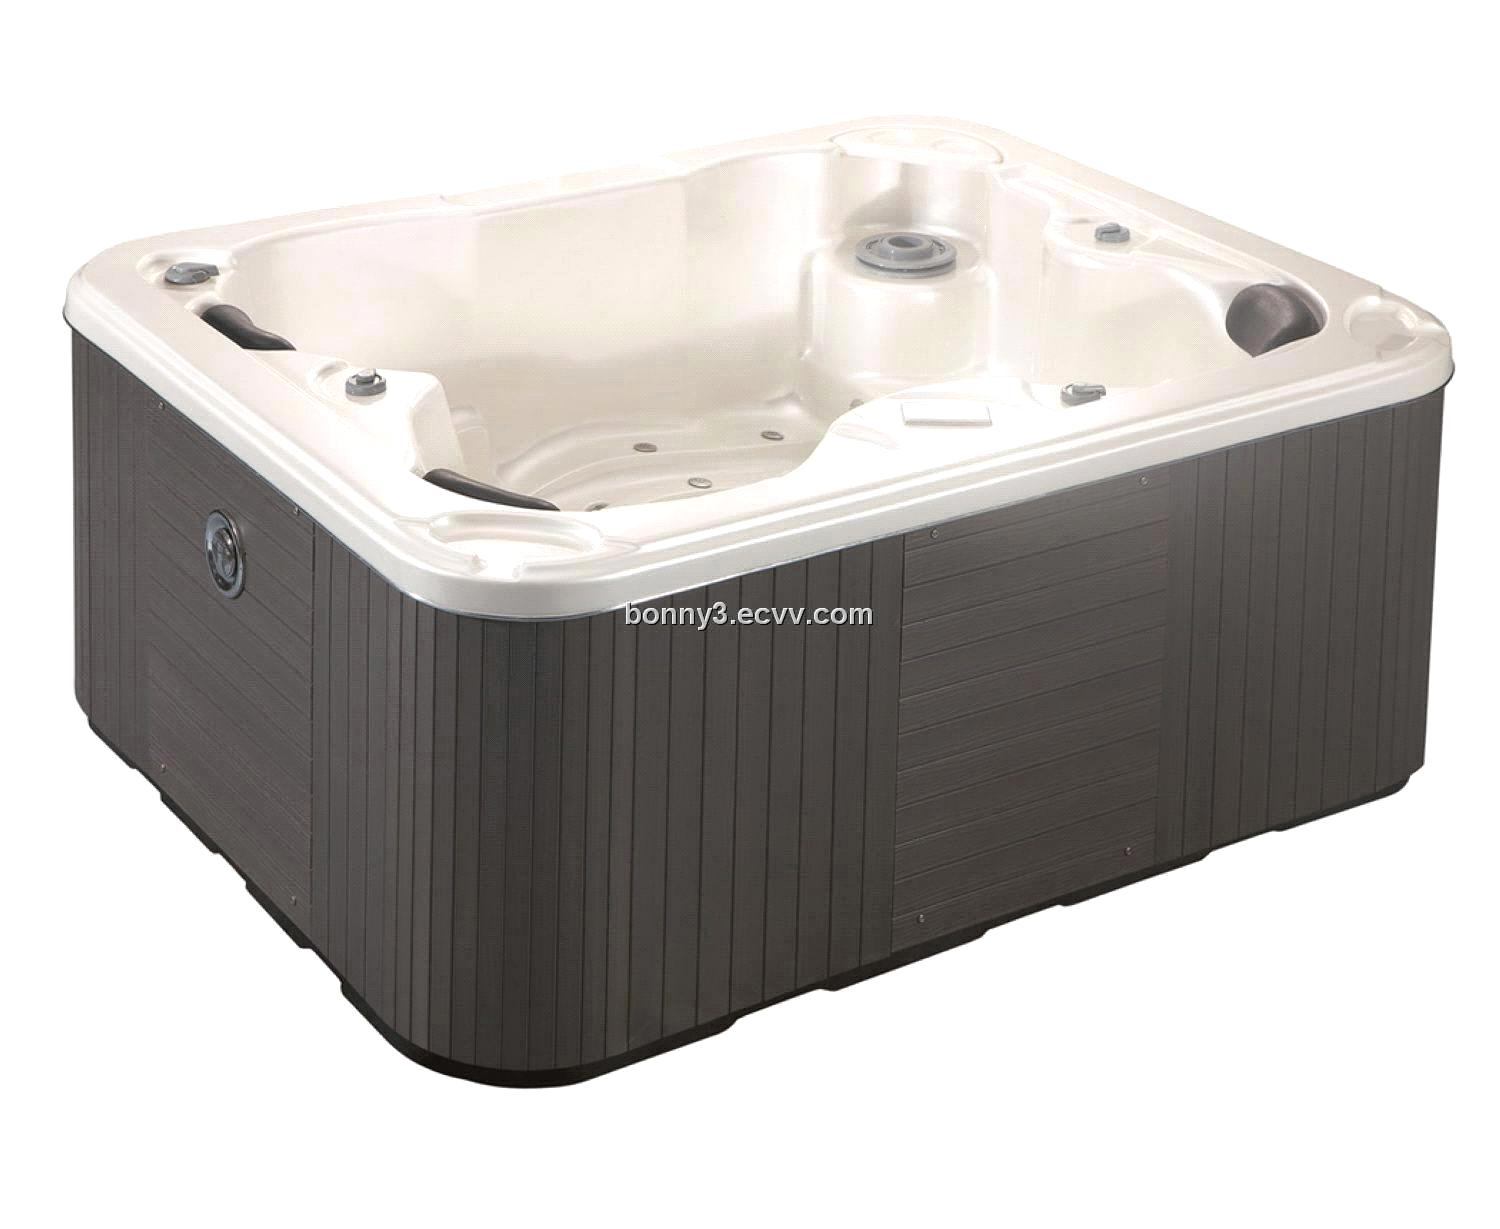 hotsale spa SR-837 outdoor spa,massage bathtub,hot tub,jacuzzi ...